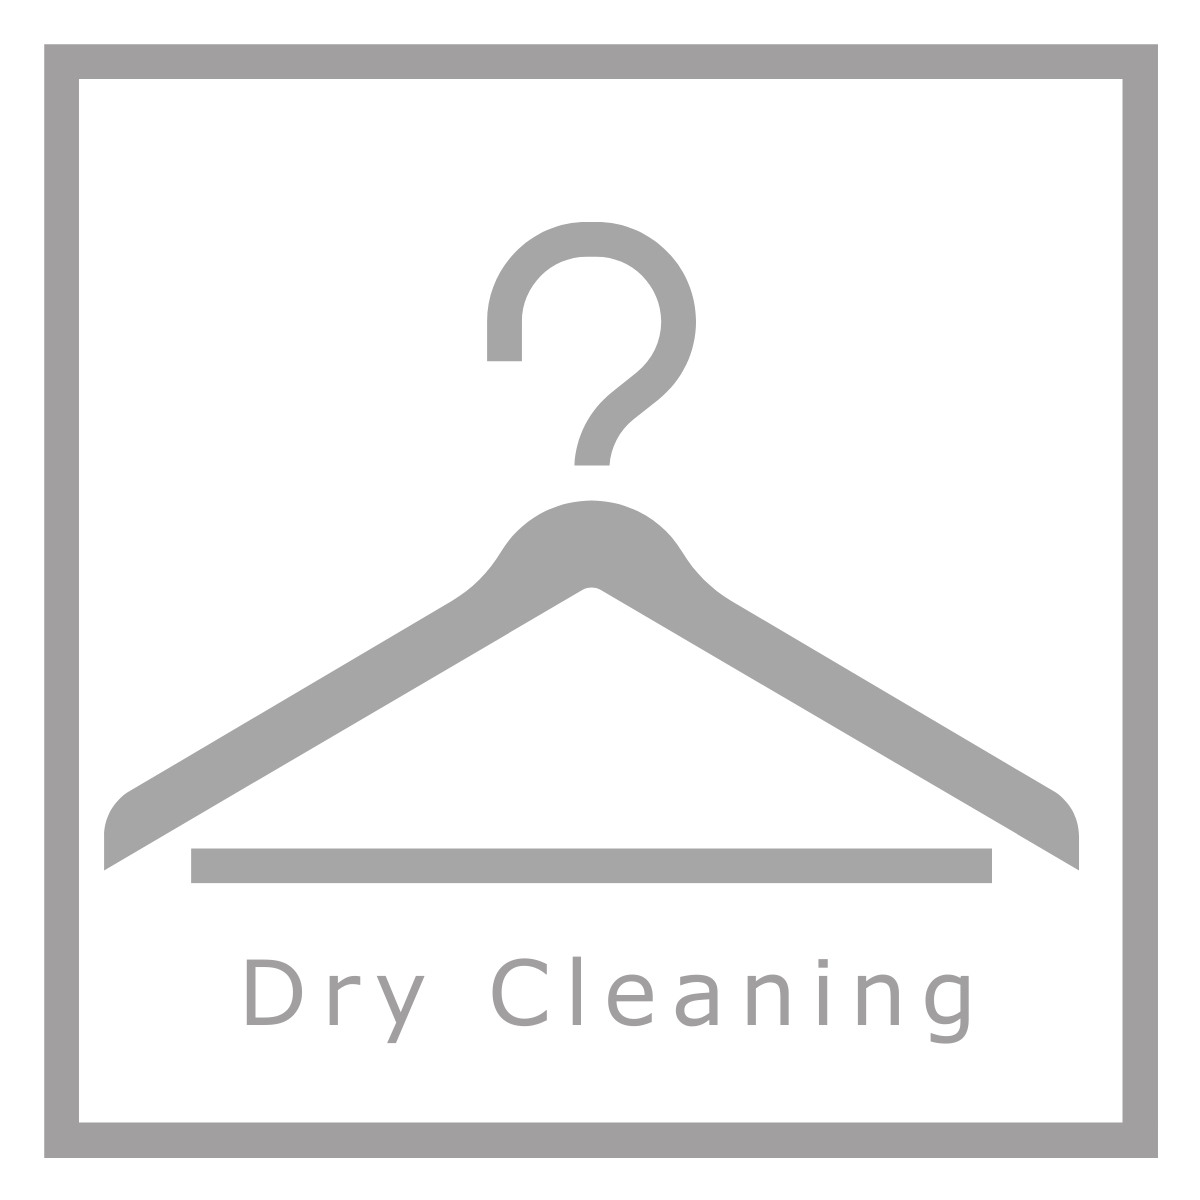 Dry Cleaning Services at The Water Tower Lounge- Amenity Center Concierge Services